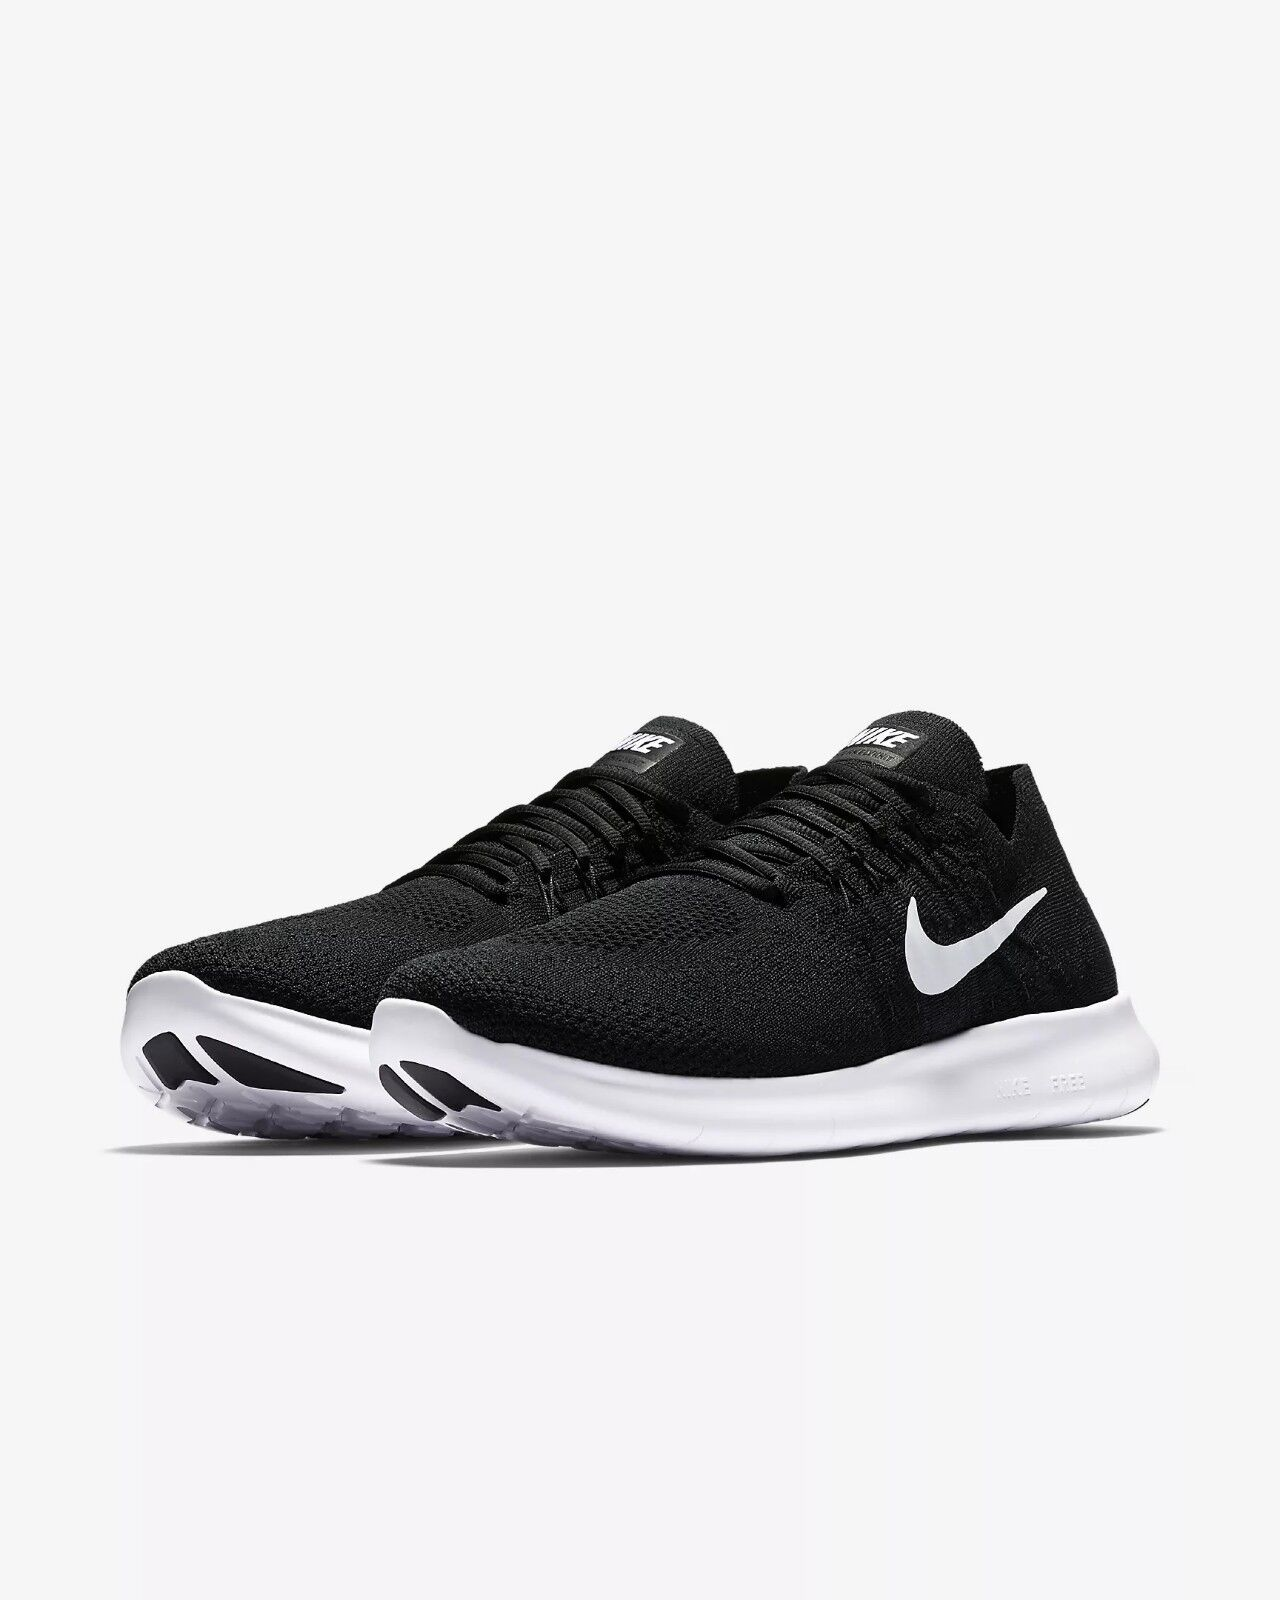 8880843-001 Nike Free RN Flyknit 2017 Running shoes Black White Sizes 8-13 NIB